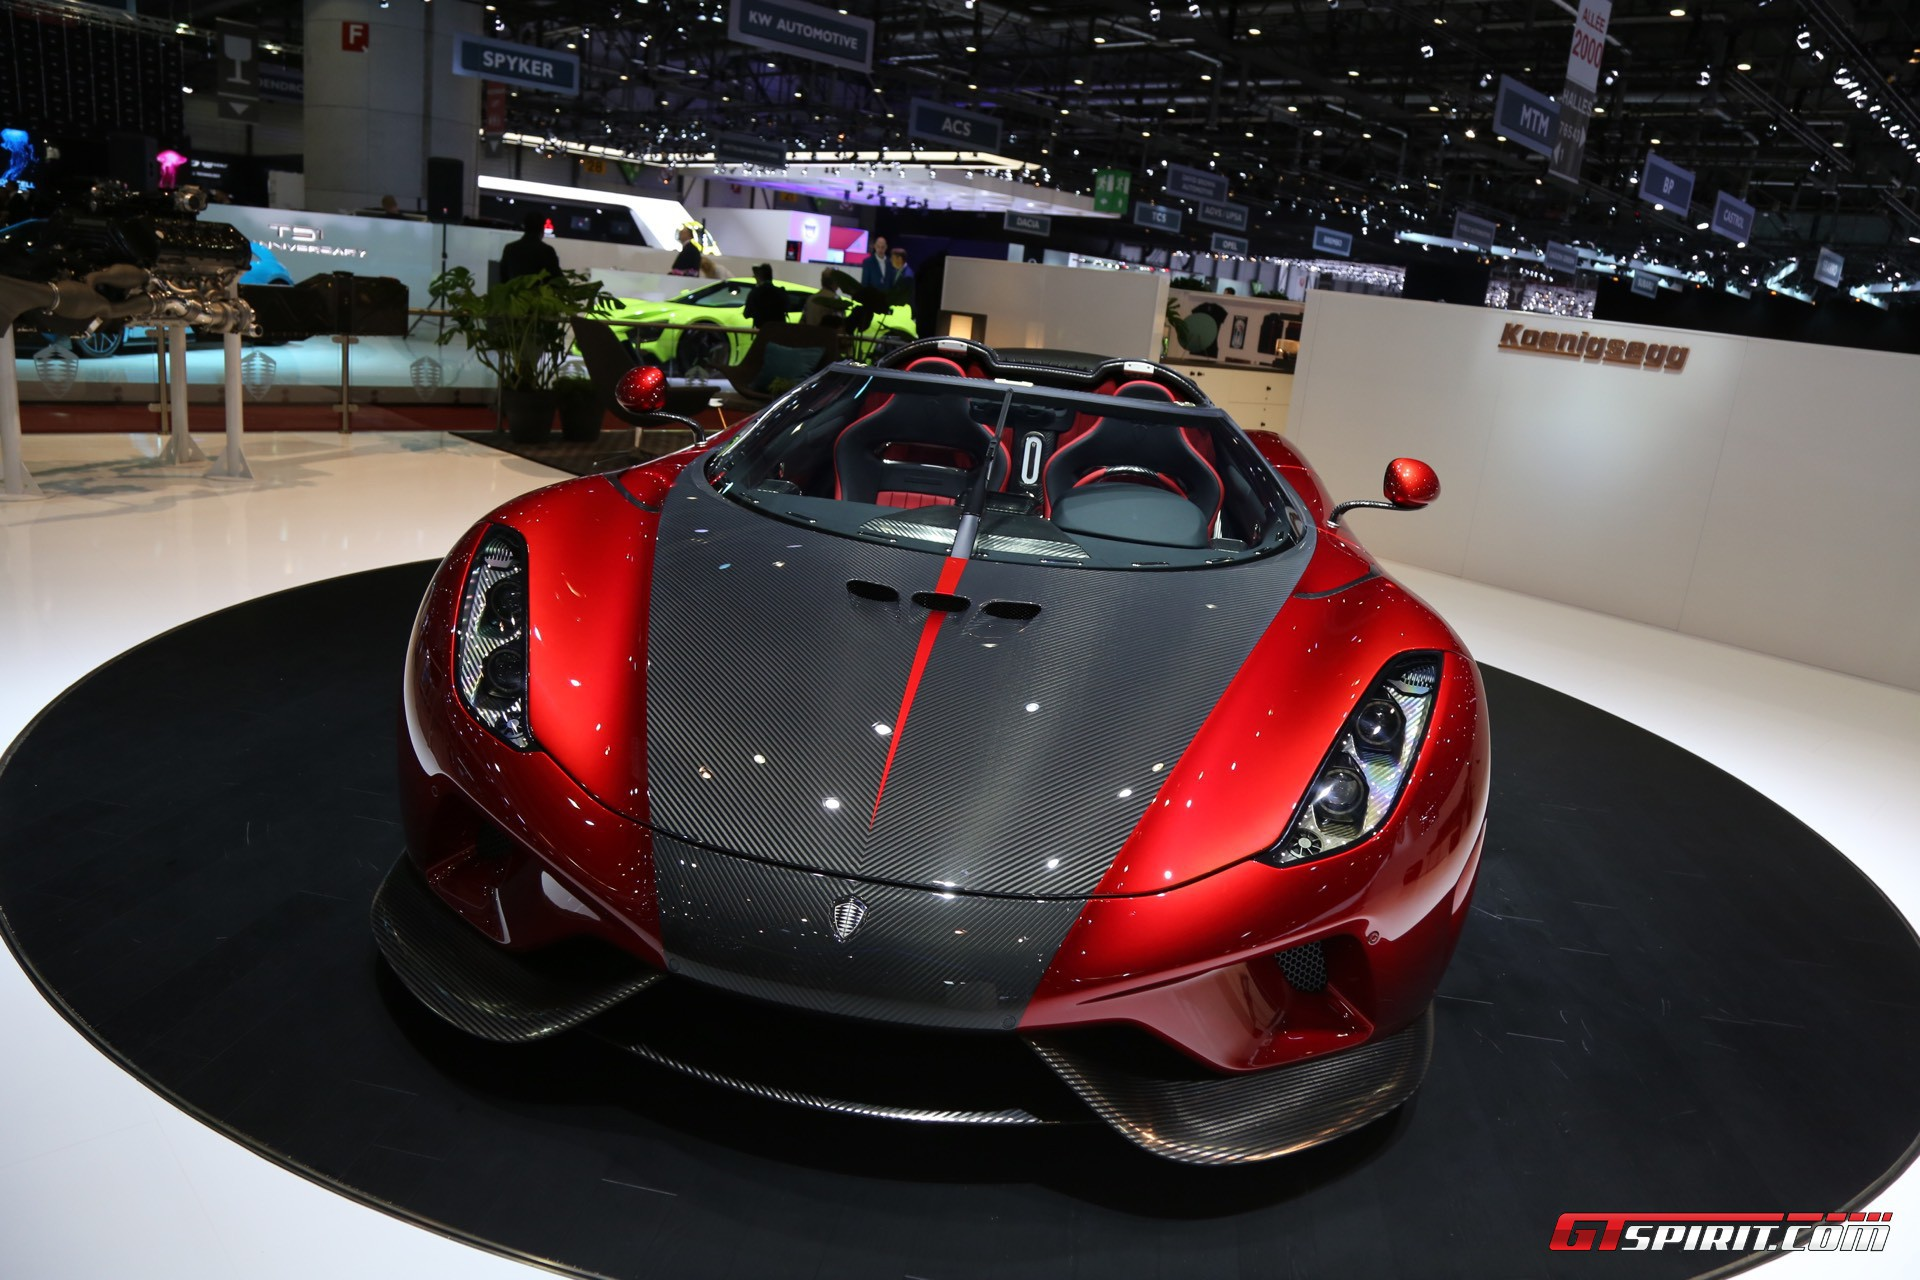 244303 Road Test 2013 Lexus Gs 450h furthermore Paris Motor Show 2014 Peugeot Exalt Concept additionally Battery Powered Bigfoot also What Is An Induction Motor as well Video Porsche 918 Spyder First Ride. on 10 horsepower electric motor